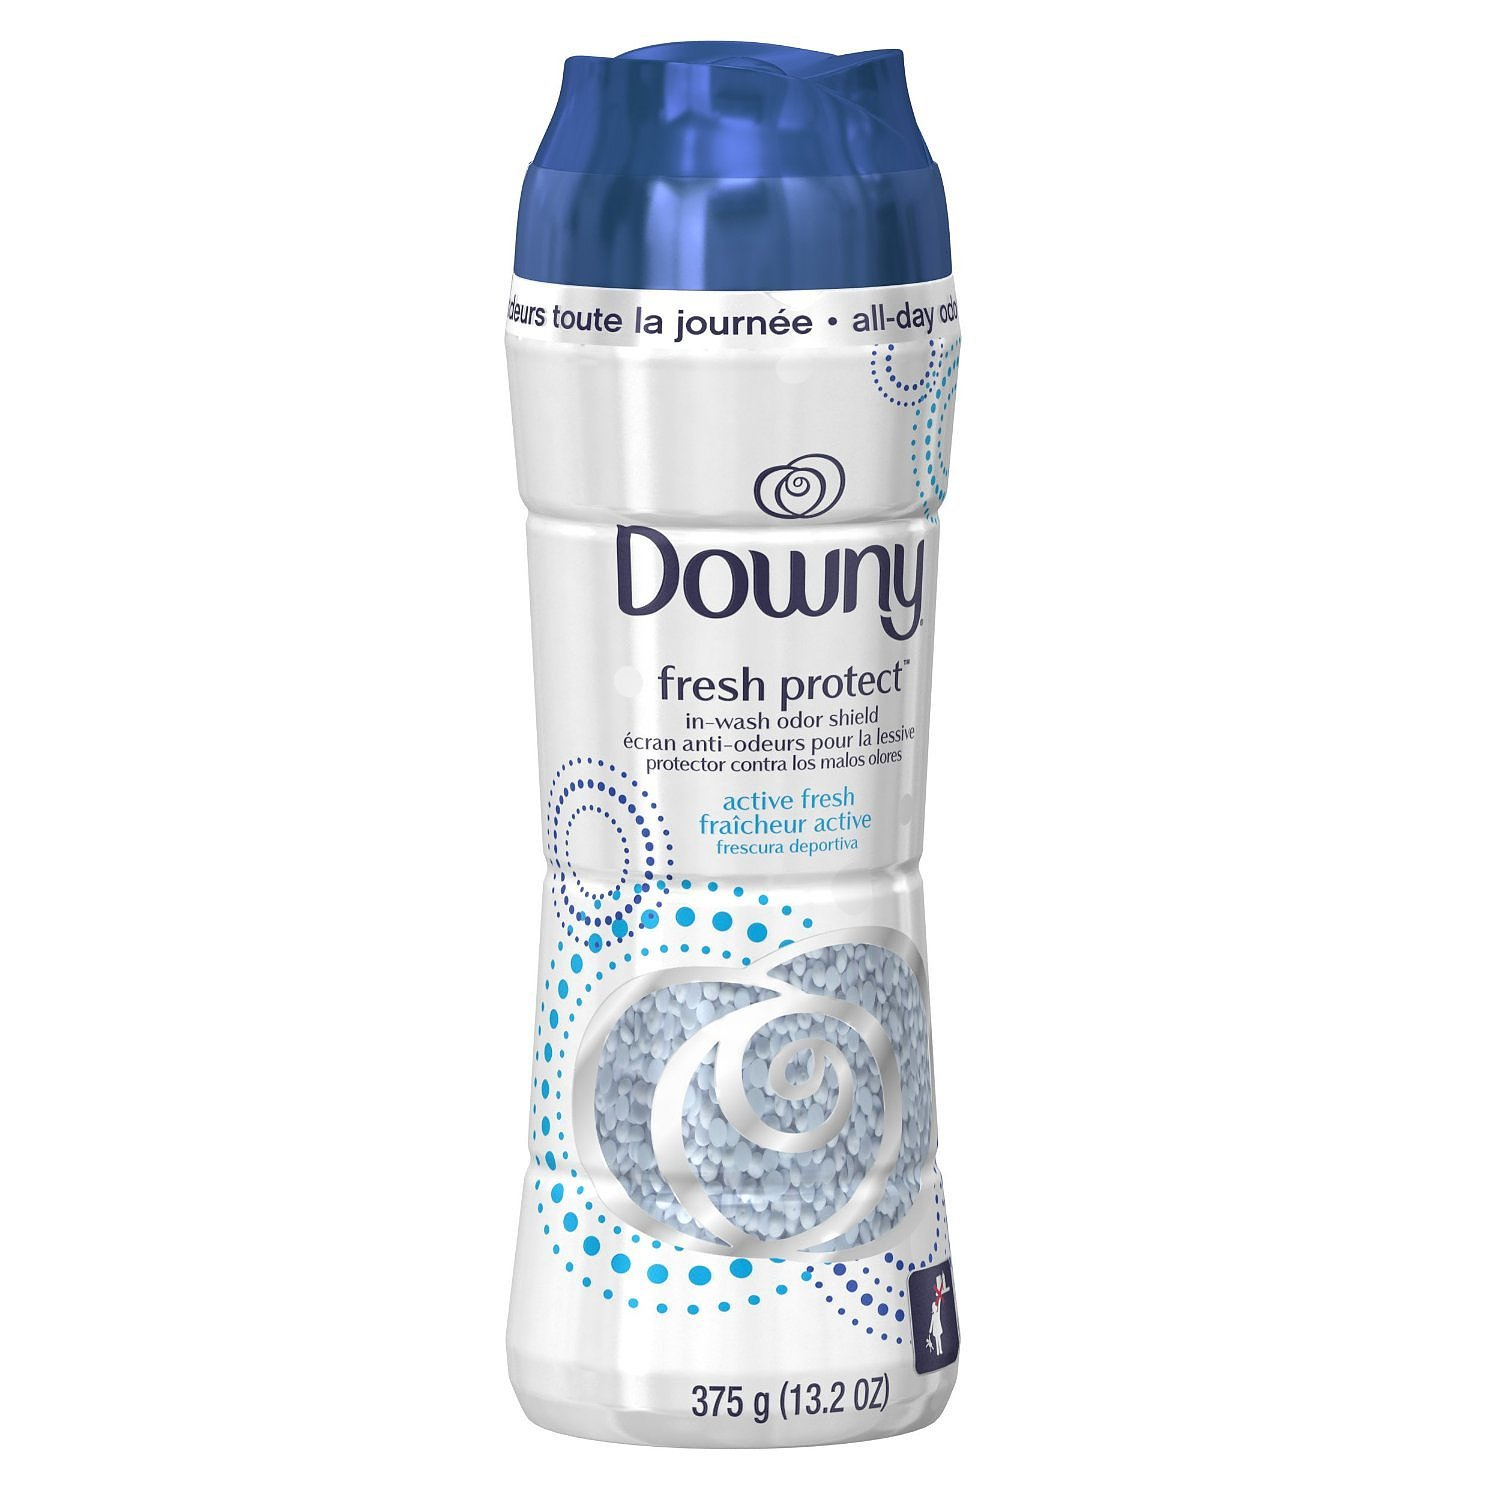 Downy Fresh Protect Tried And Tested The Best Laundry